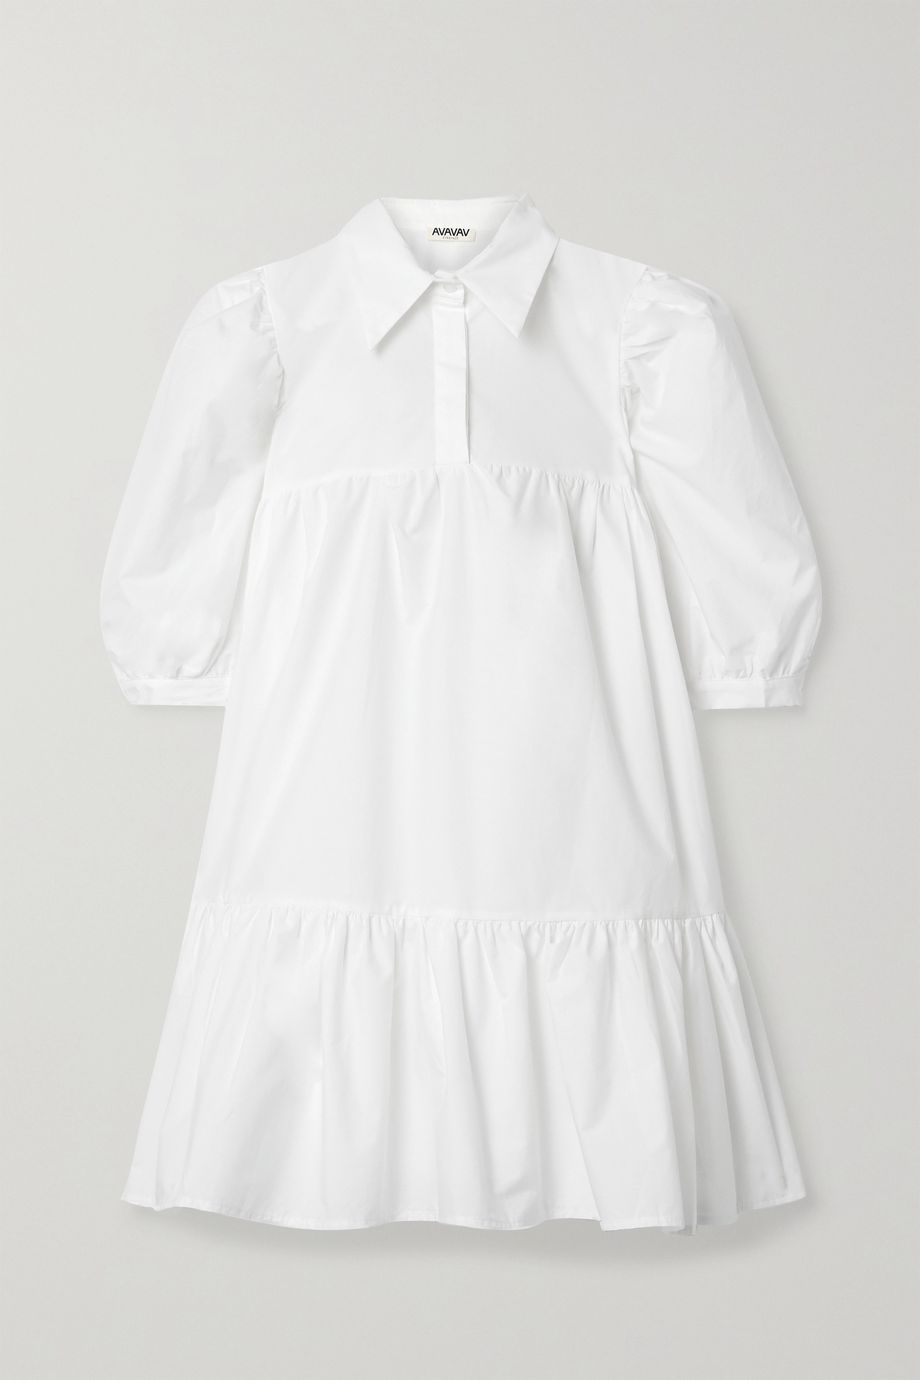 AVAVAV Gathered ruffled cotton-poplin mini dress